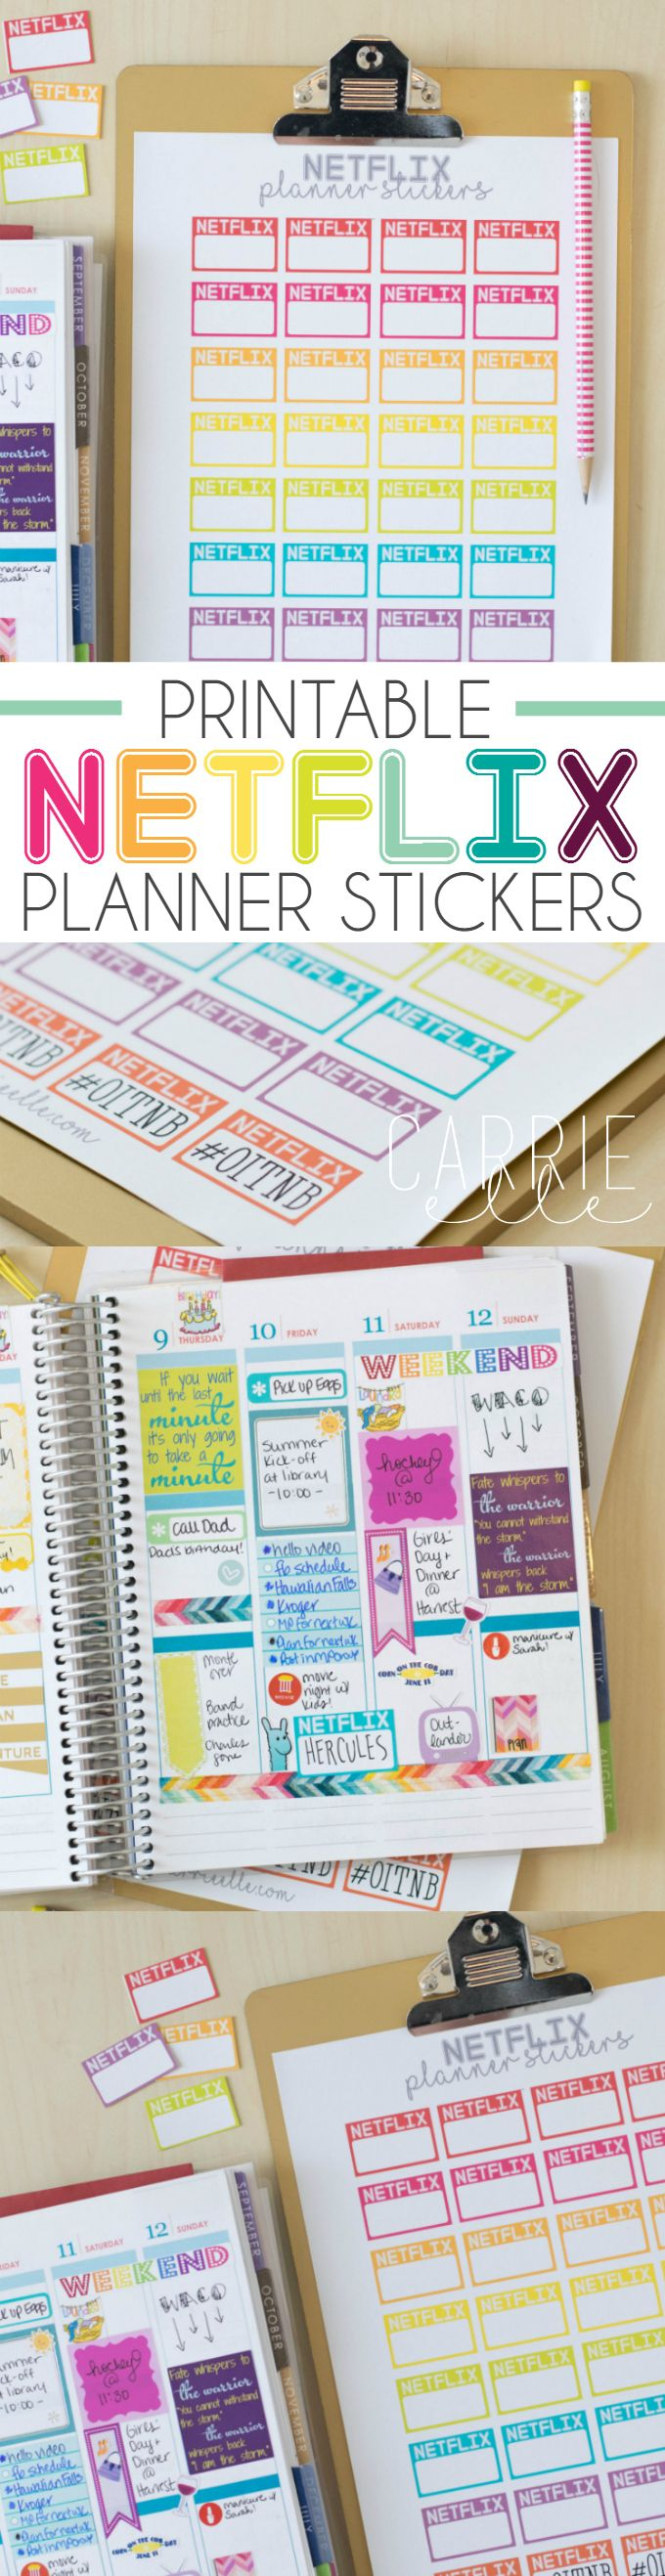 Printable Netflix Planner Stickers